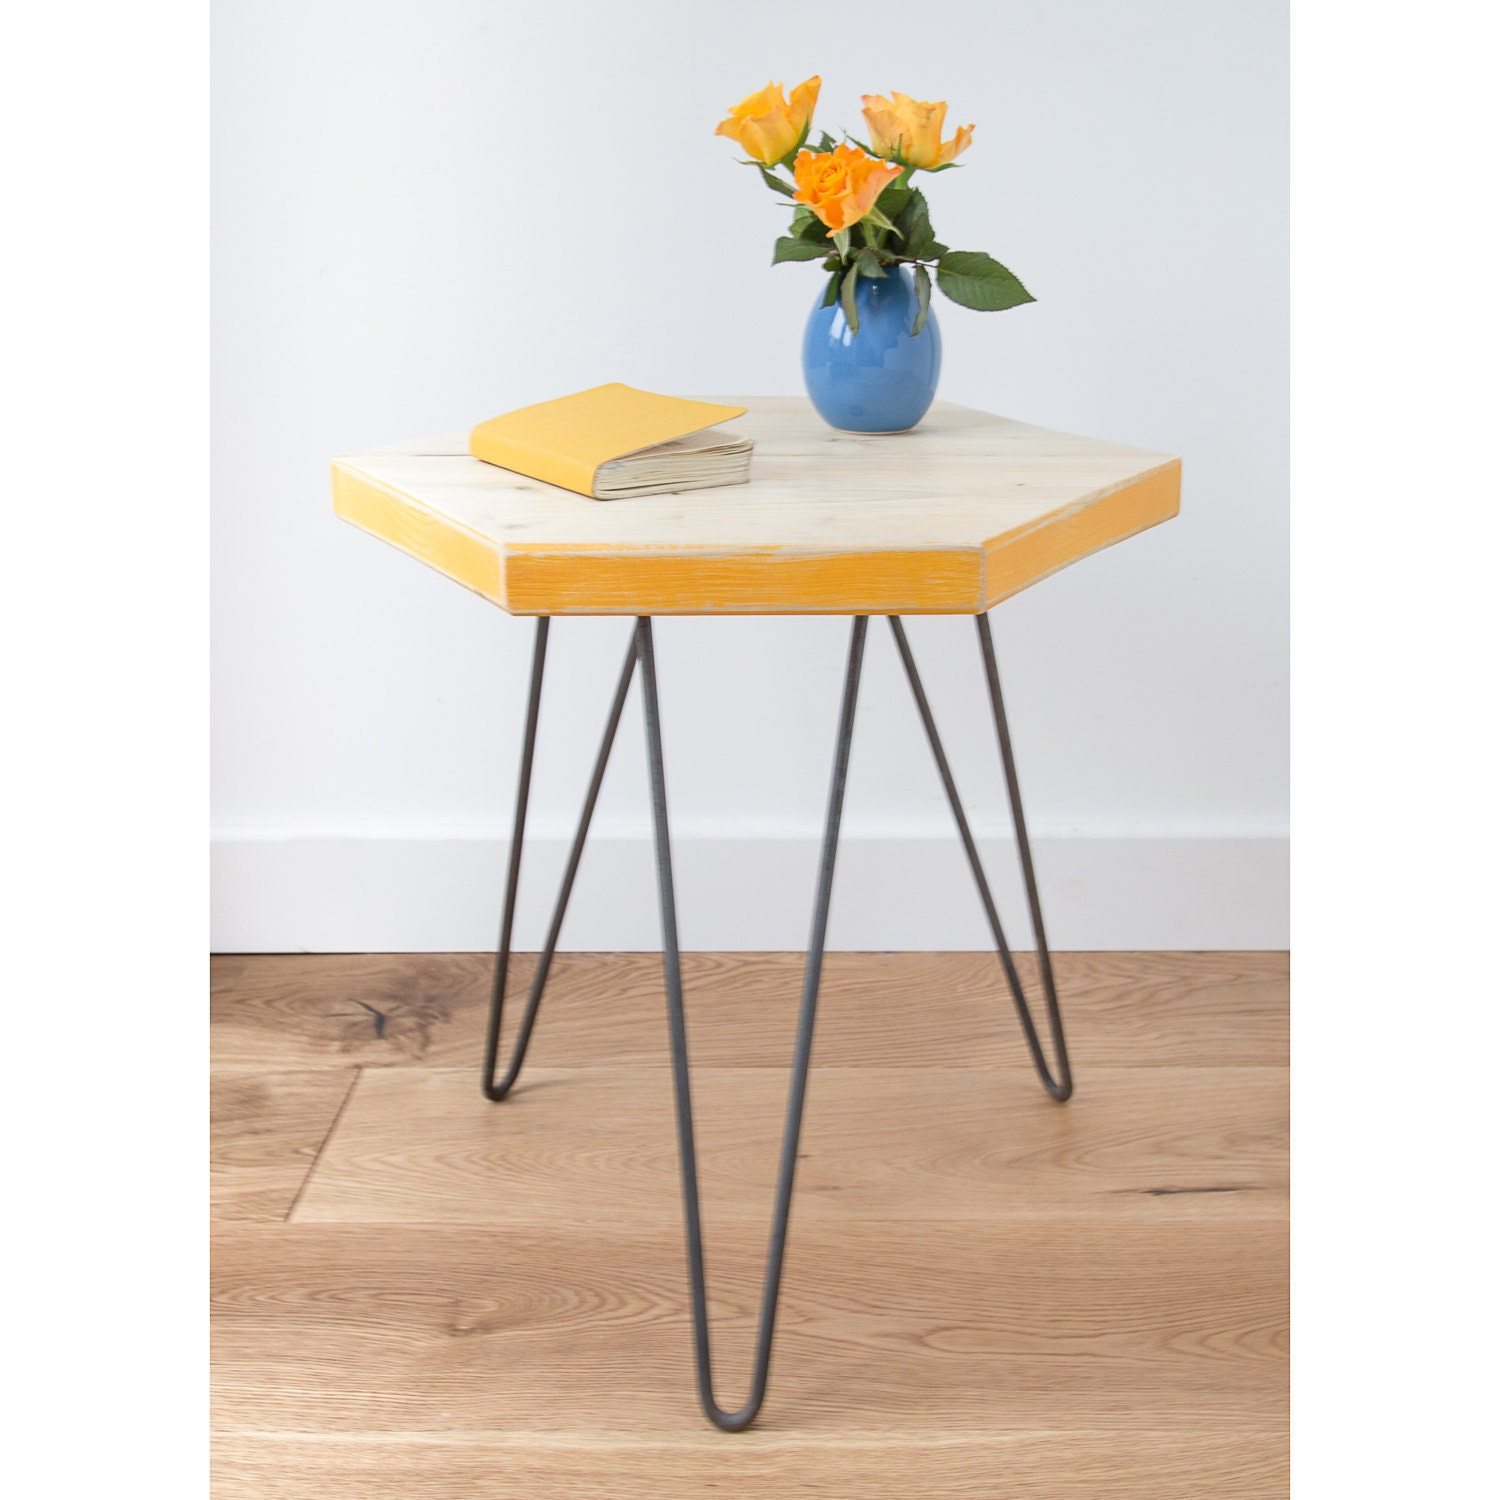 New Wooden Hexagon Coffee Table With Colour Pop Pantone Etsy